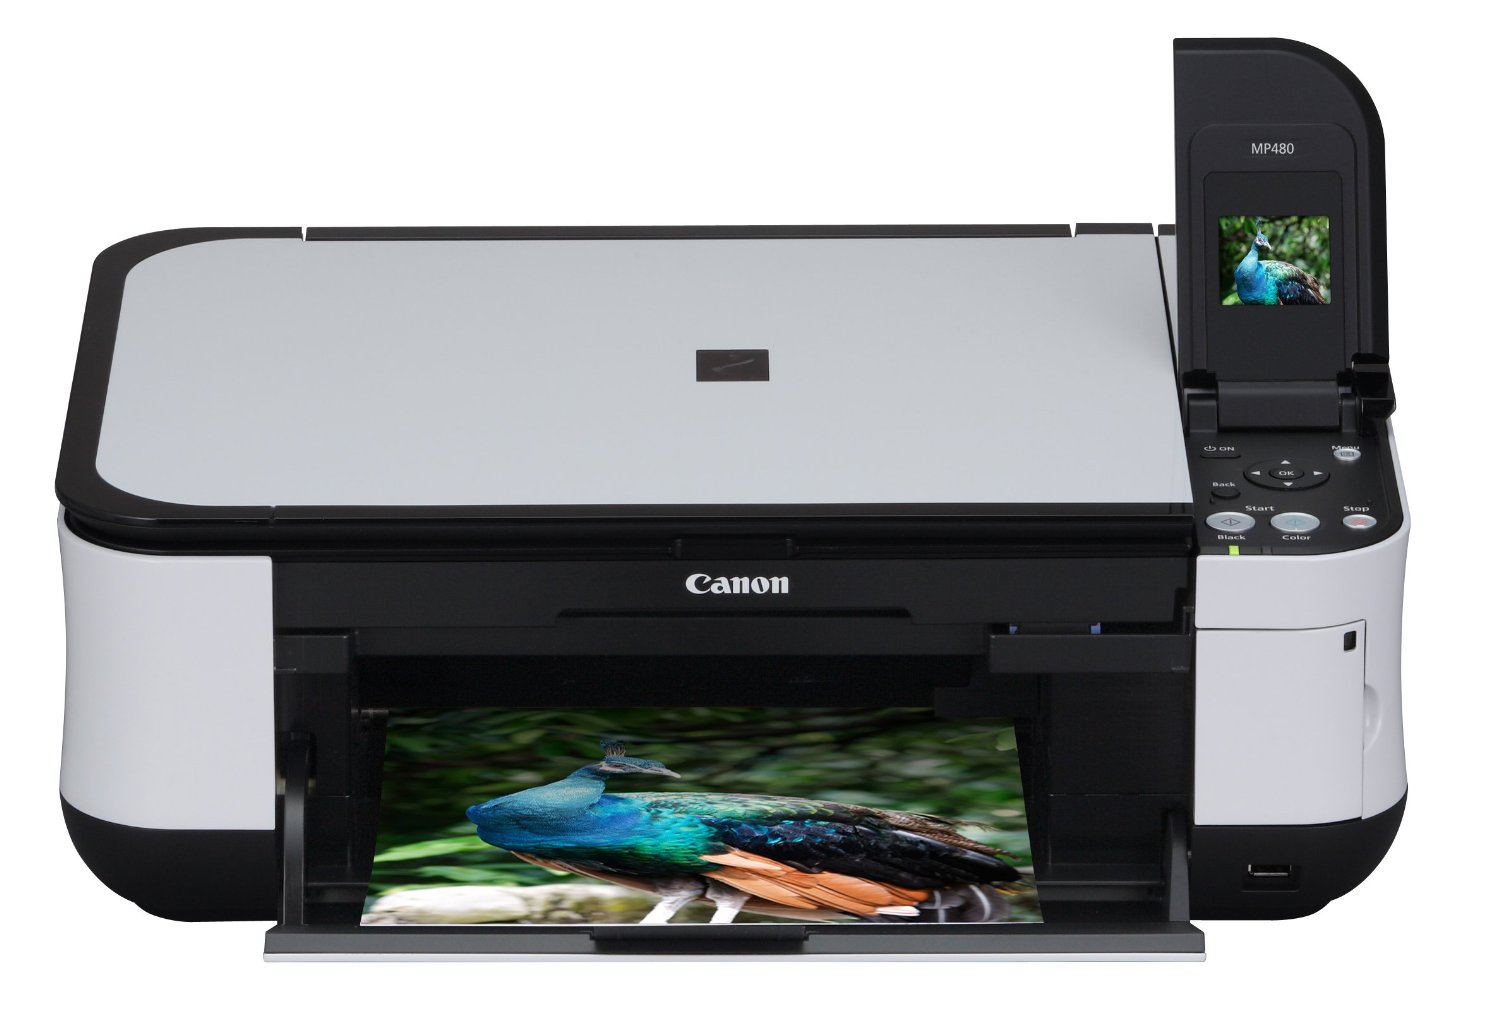 Canon MP480 Driver Series For Windows And Mac